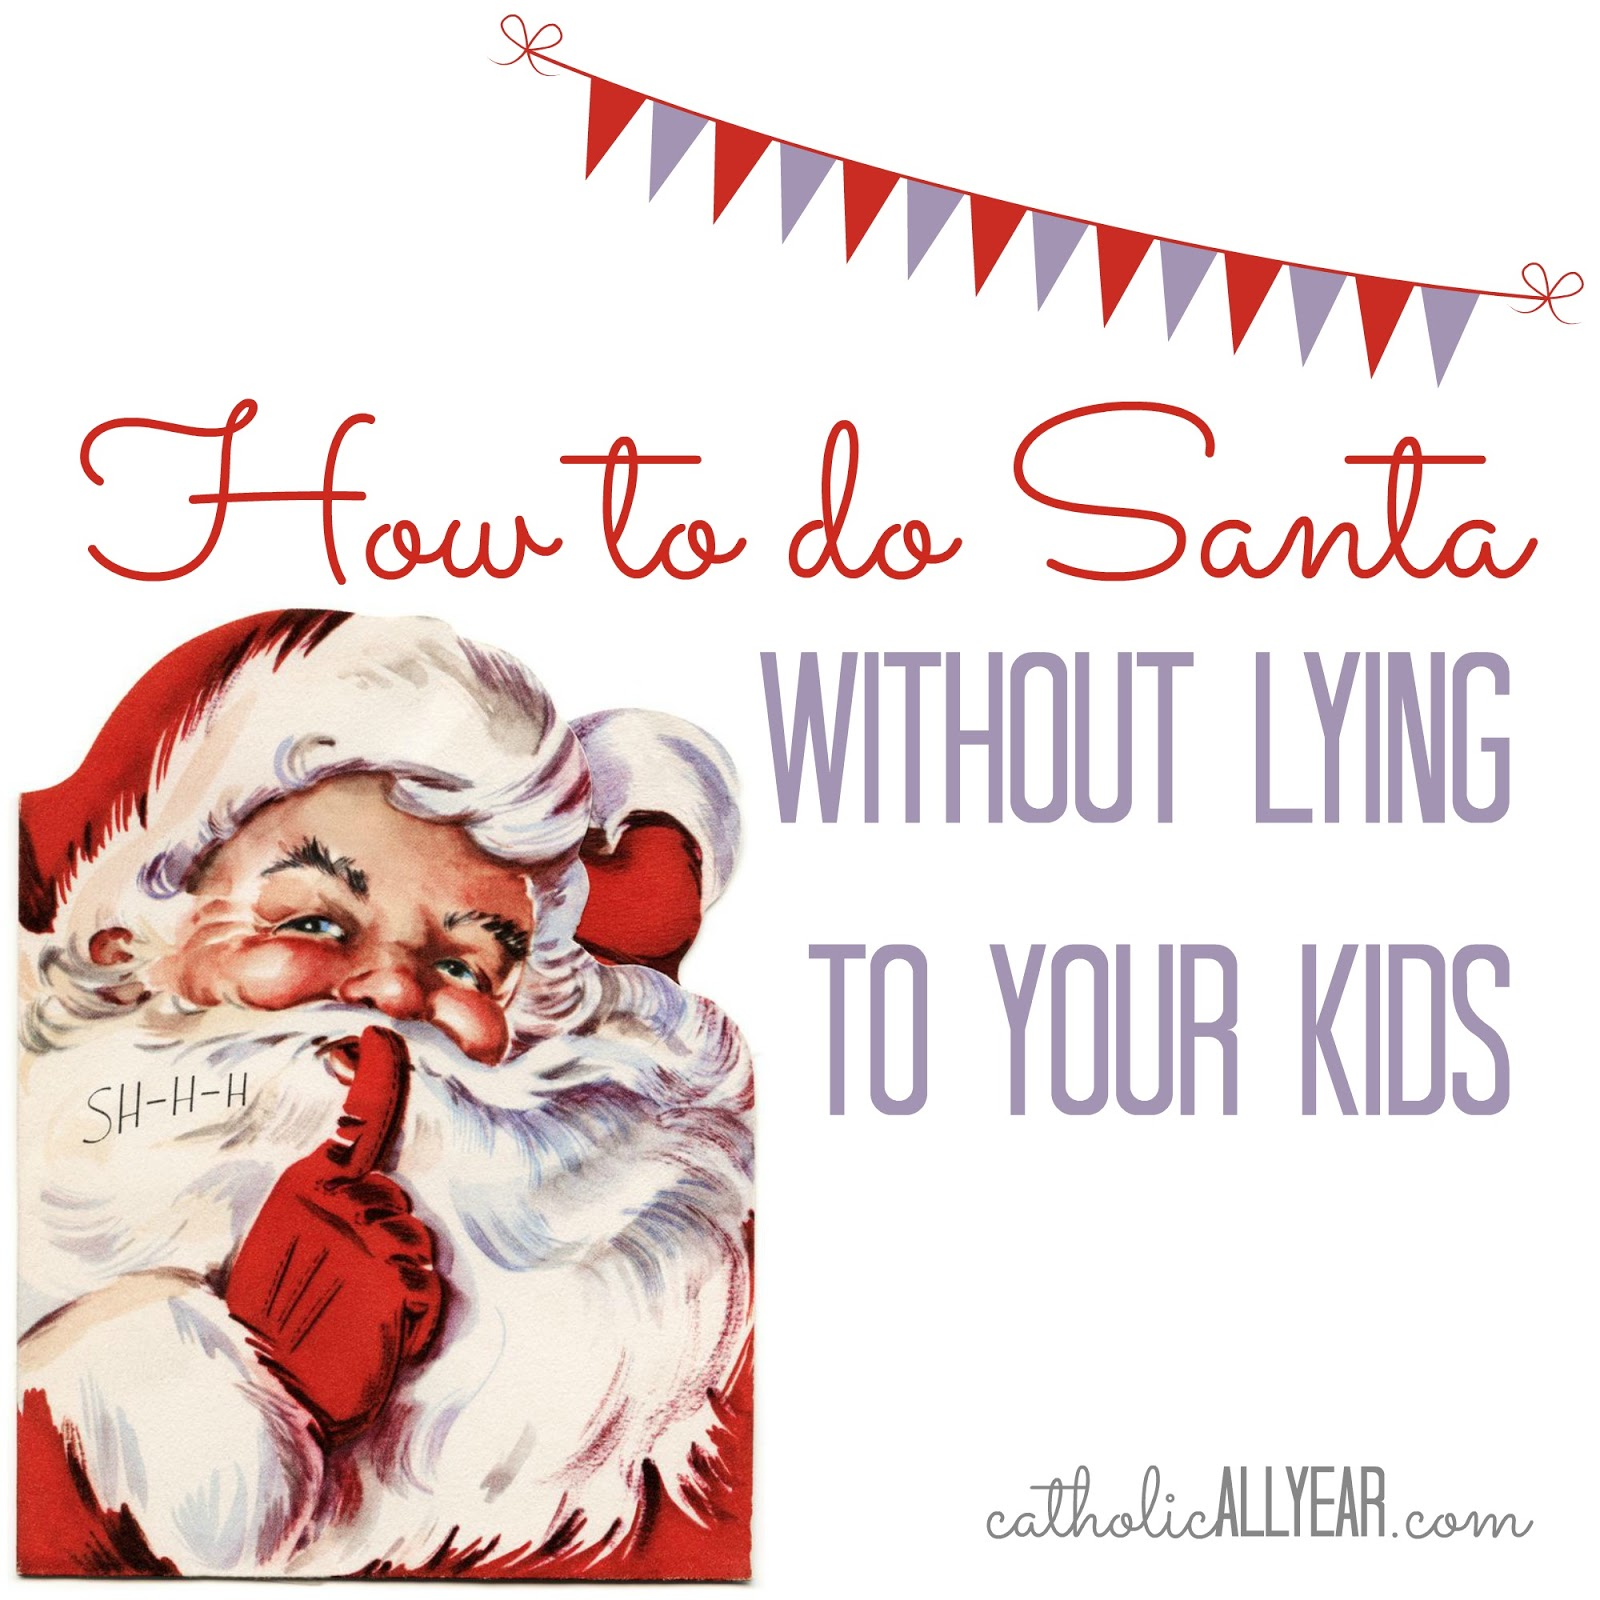 Catholic all year how to do santa without lying to your kids in our family we do santa we dont lie to our kids they do not report feeling betrayed they havent been denied a culturally typical christmas spiritdancerdesigns